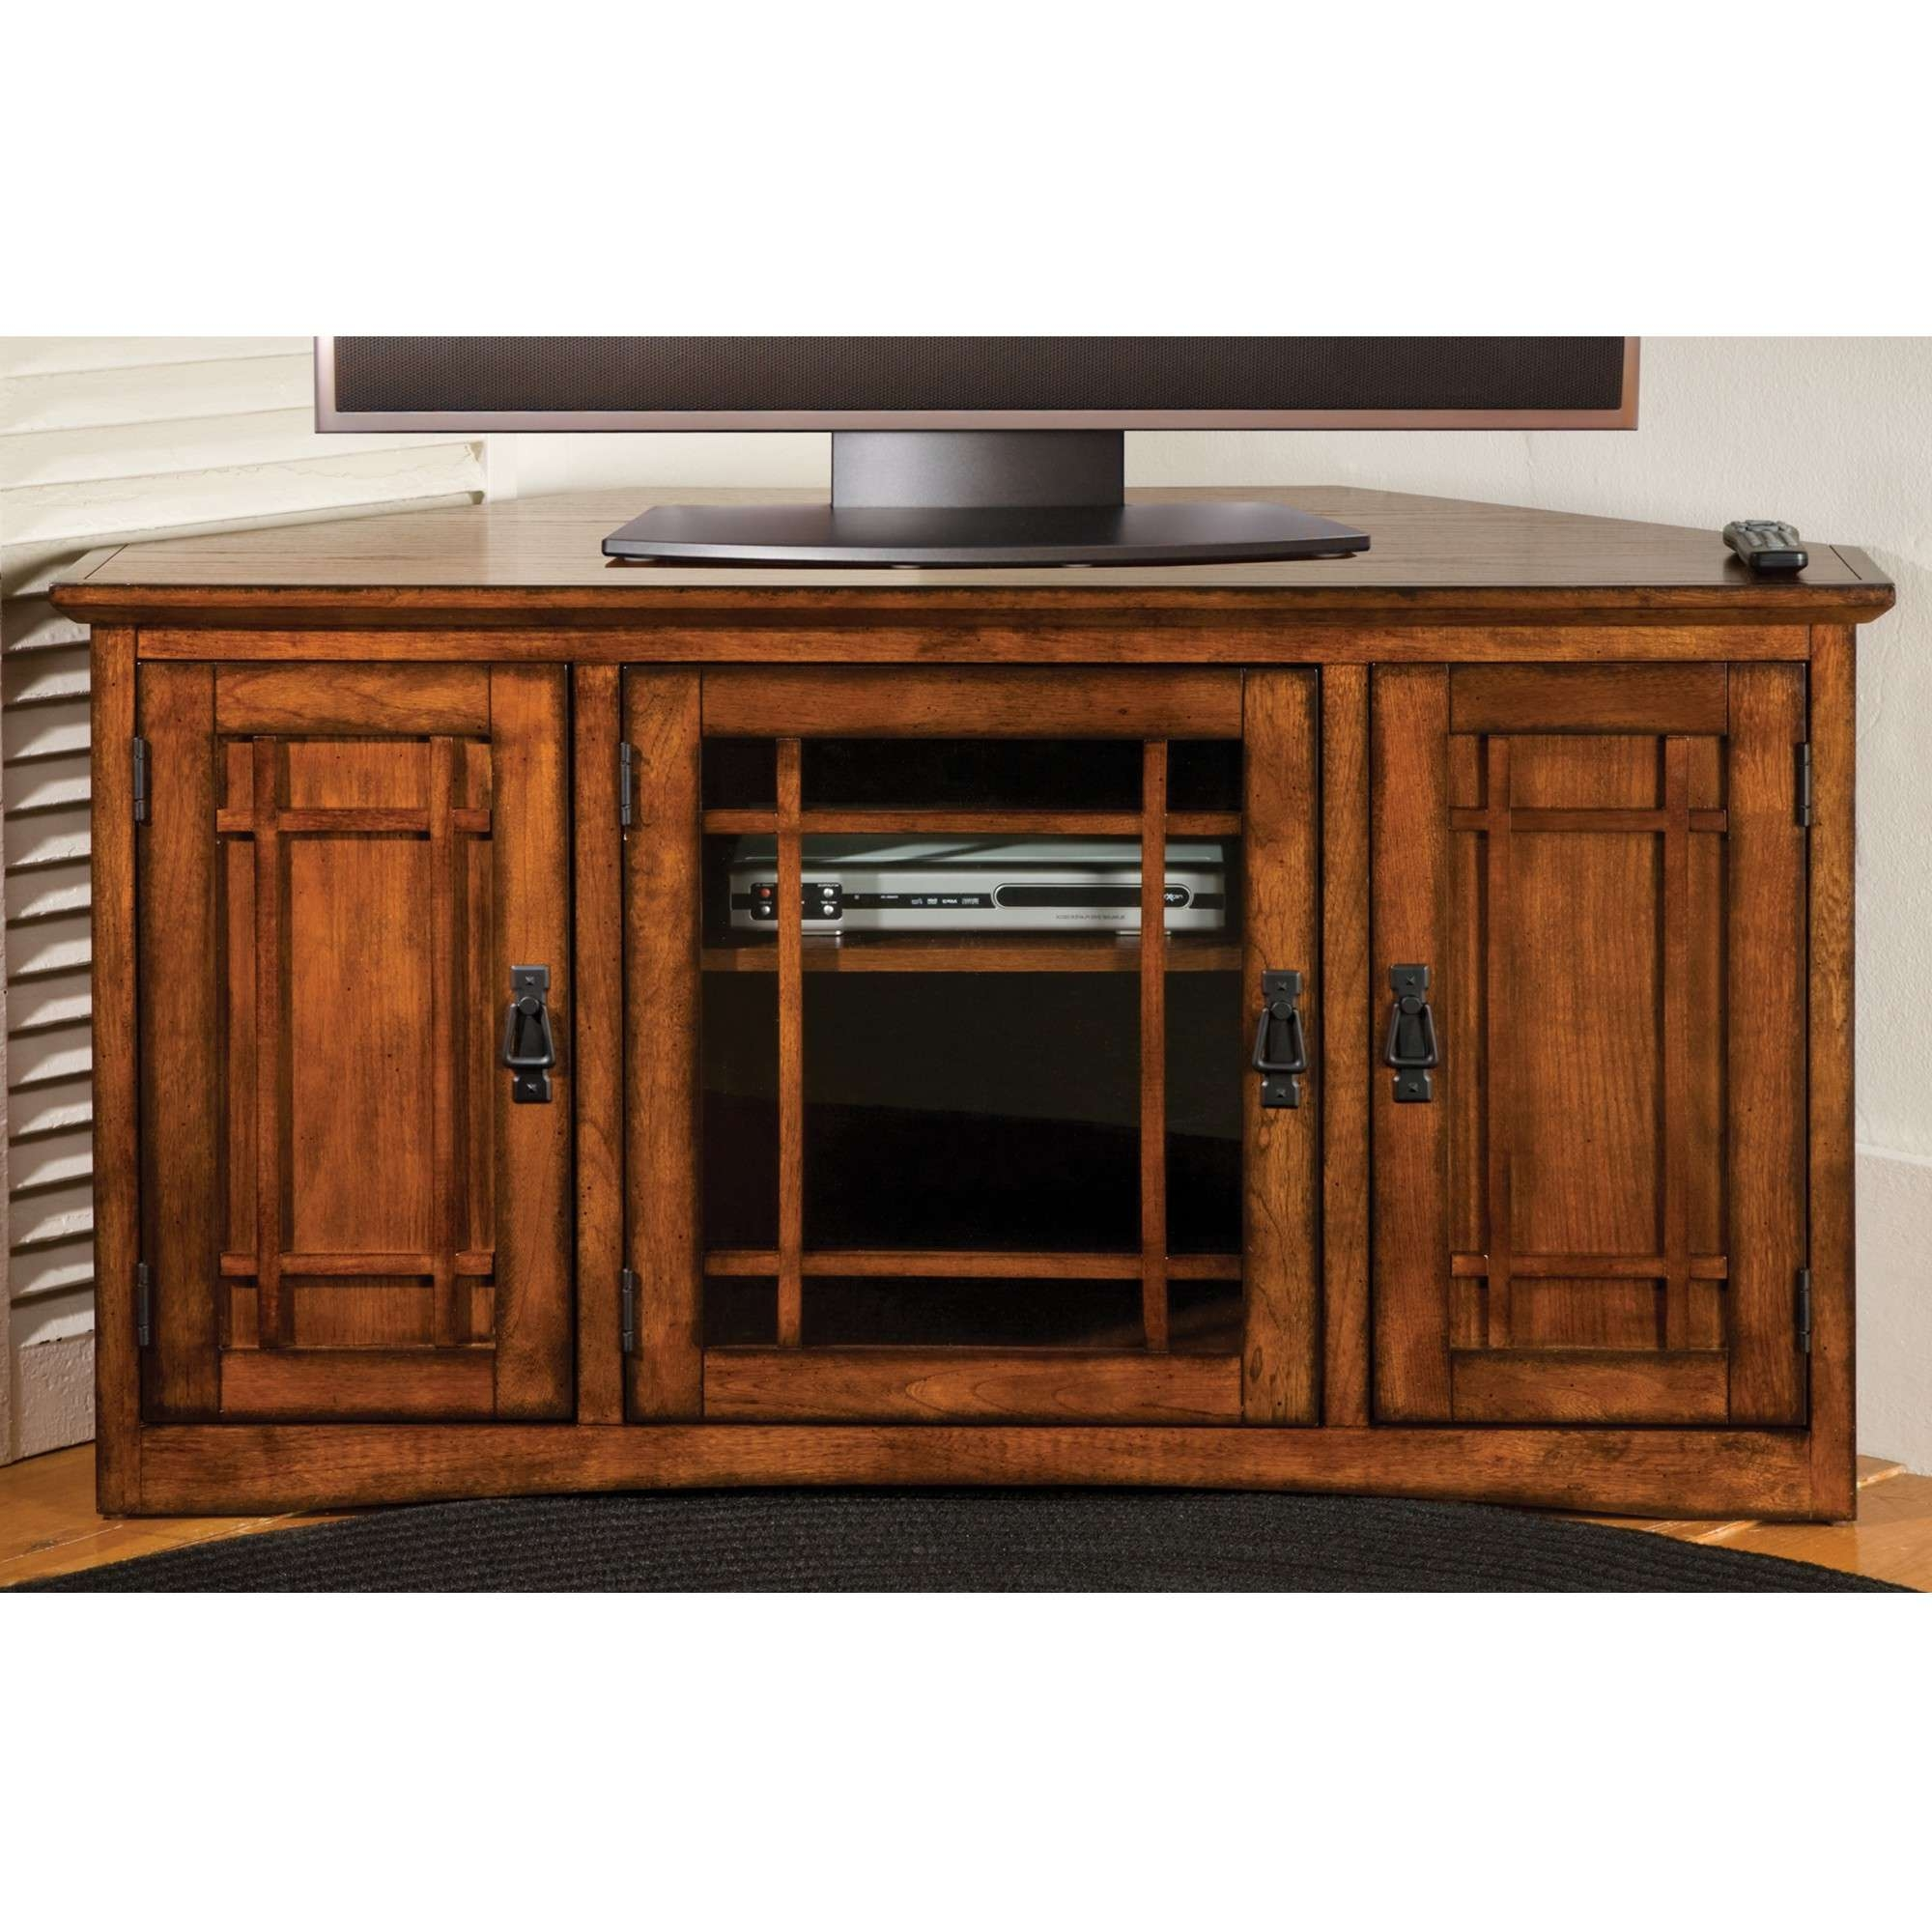 Furniture Stylish Antique Television Corner Cabinet With Barn Throughout Maple Wood Tv Stands View